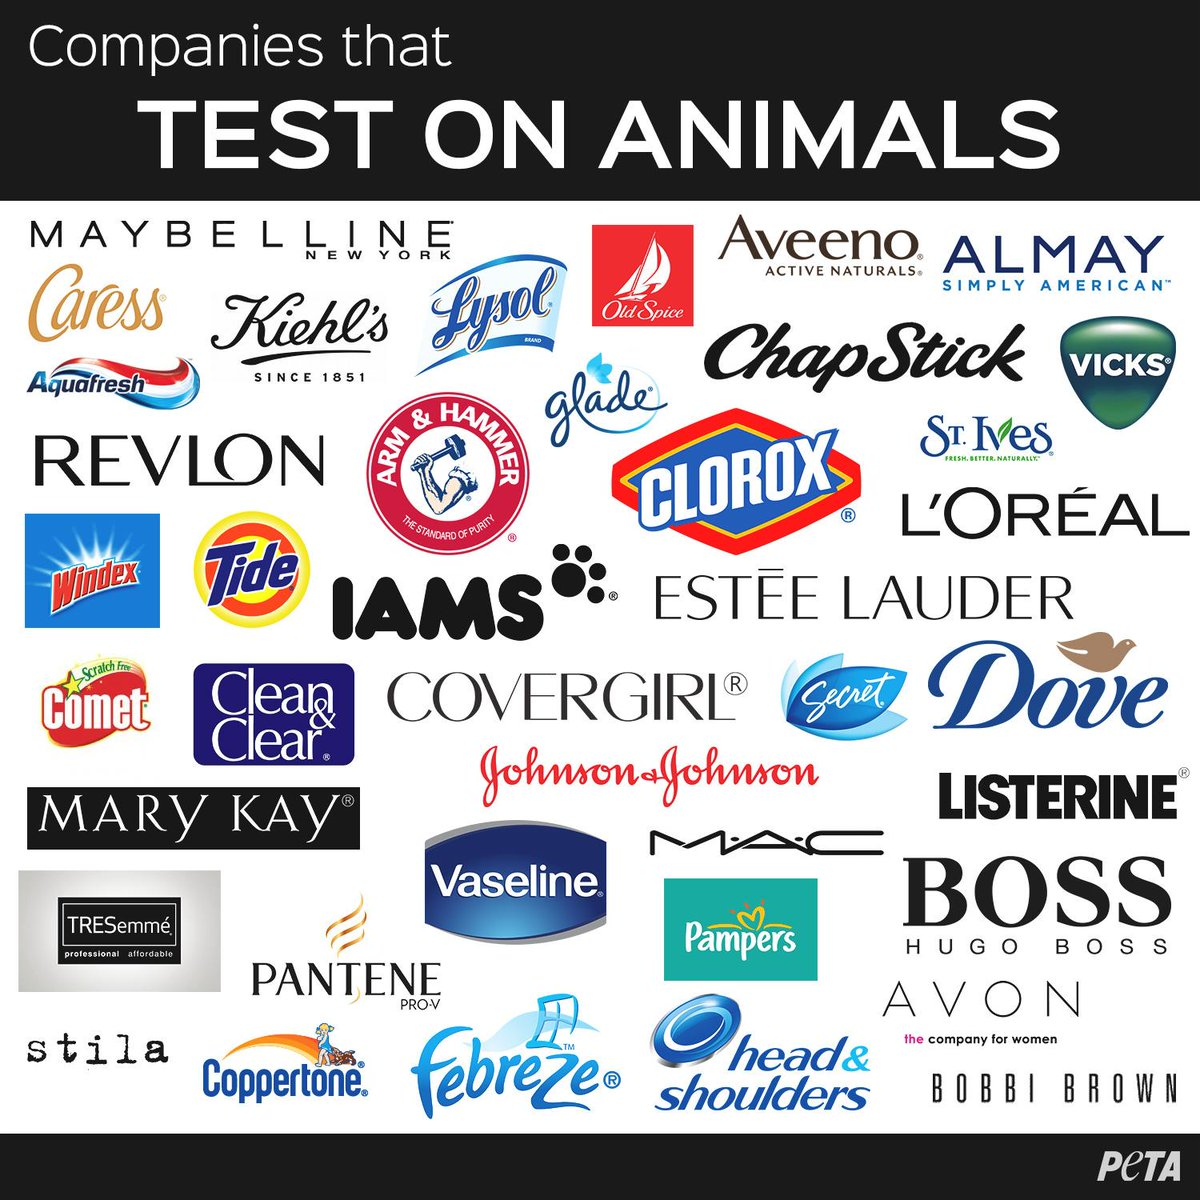 how to tell if a product is tested on animals